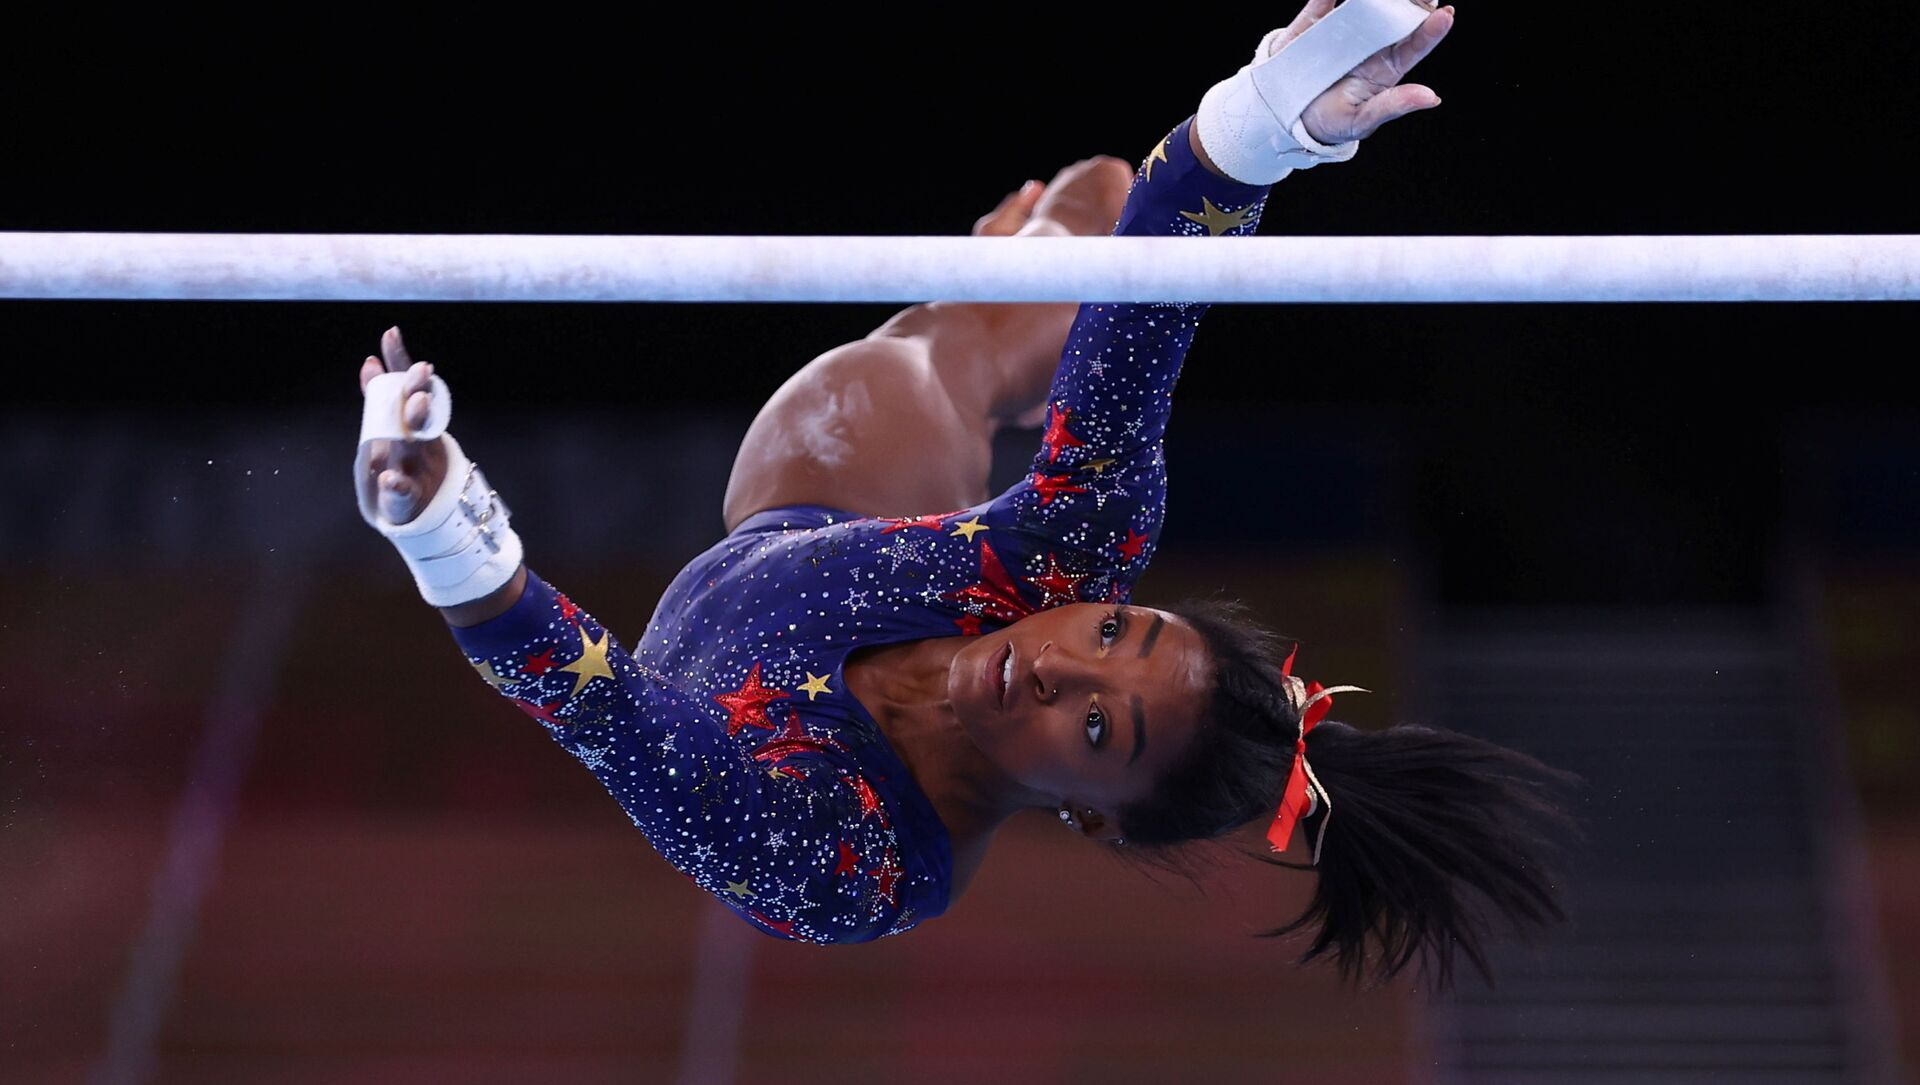 Tokyo 2020 Olympics - Gymnastics - Artistic - Women's Uneven Bars - Qualification - Ariake Gymnastics Centre, Tokyo, Japan - July 25, 2021. Simone Biles of the United States in action during the uneven bars REUTERS/Mike Blake/File photo  SEARCH OLYMPICS DAY 3 FOR TOKYO 2020 OLYMPICS EDITOR'S CHOICE, SEARCH REUTERS OLYMPICS TOPIX FOR ALL EDITOR'S CHOICE PICTURES. - Sputnik International, 1920, 28.07.2021